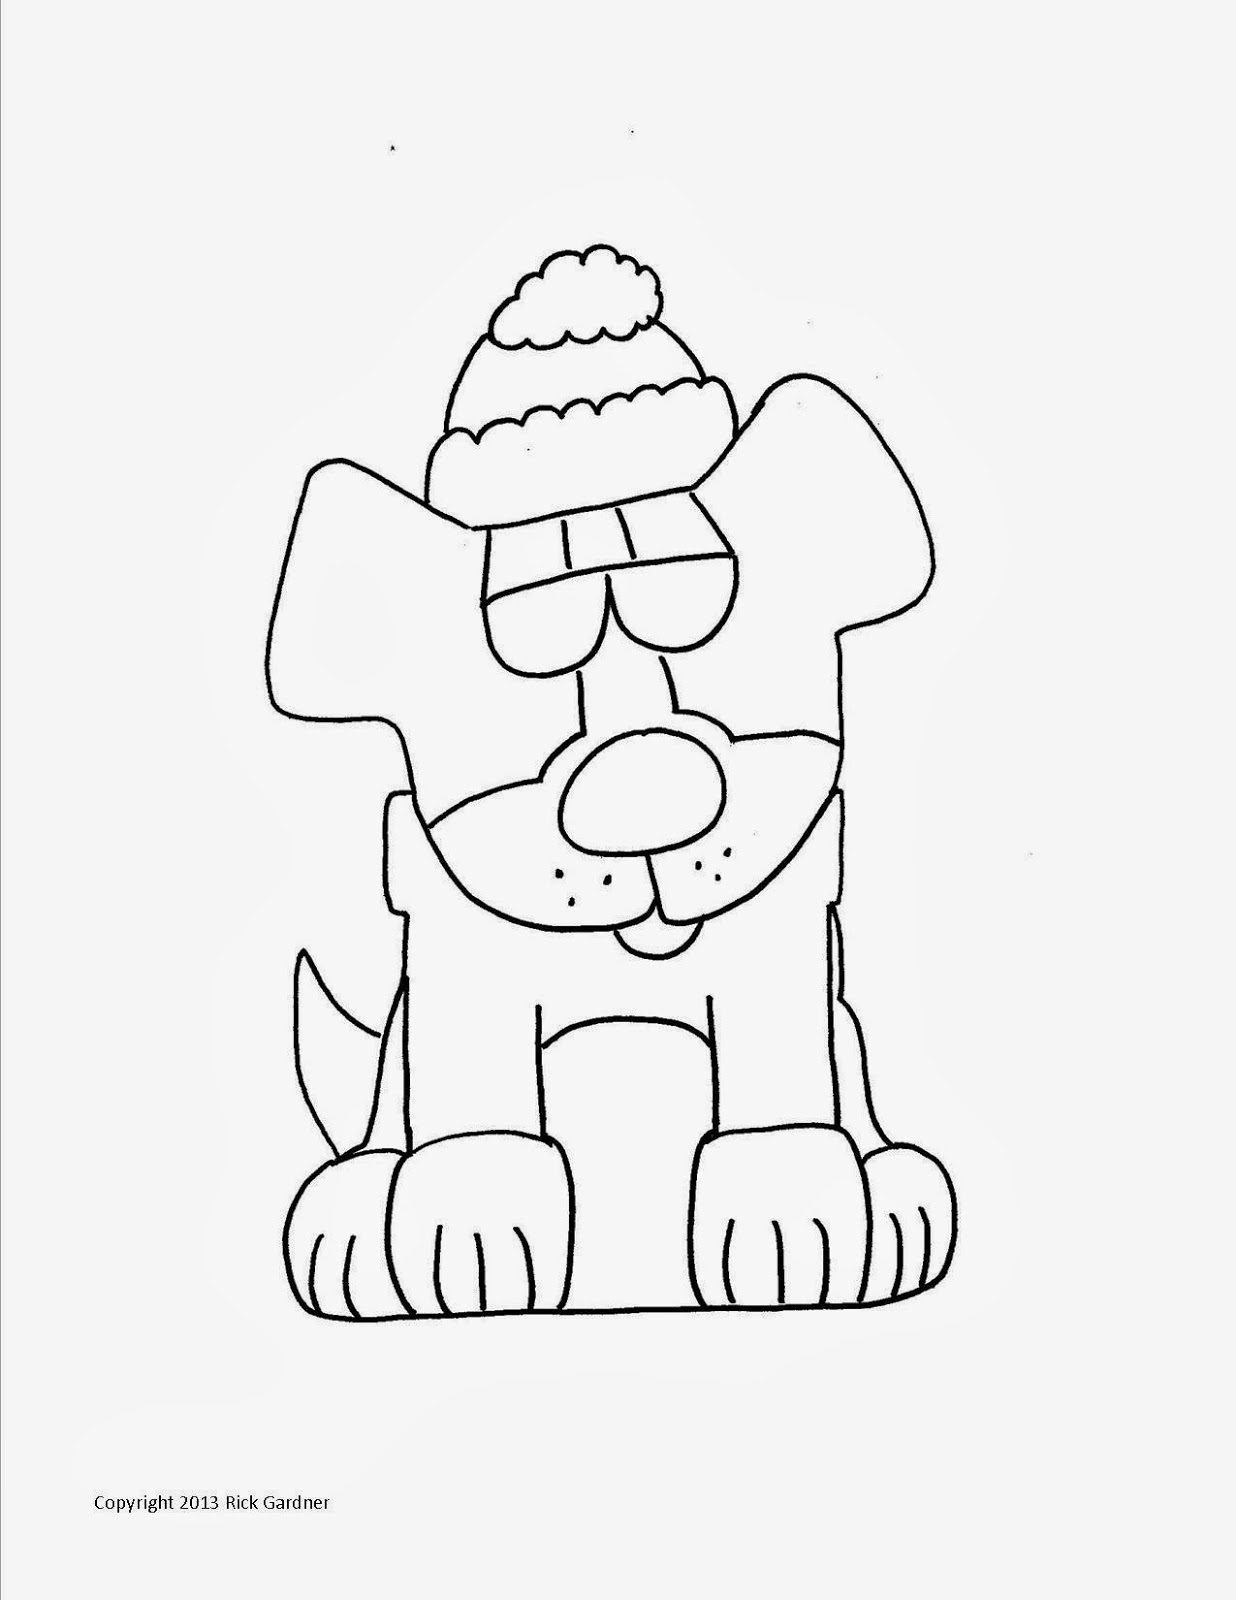 Apex Lazy Dog Blog: Advent Lazy Dog Coloring Page #2